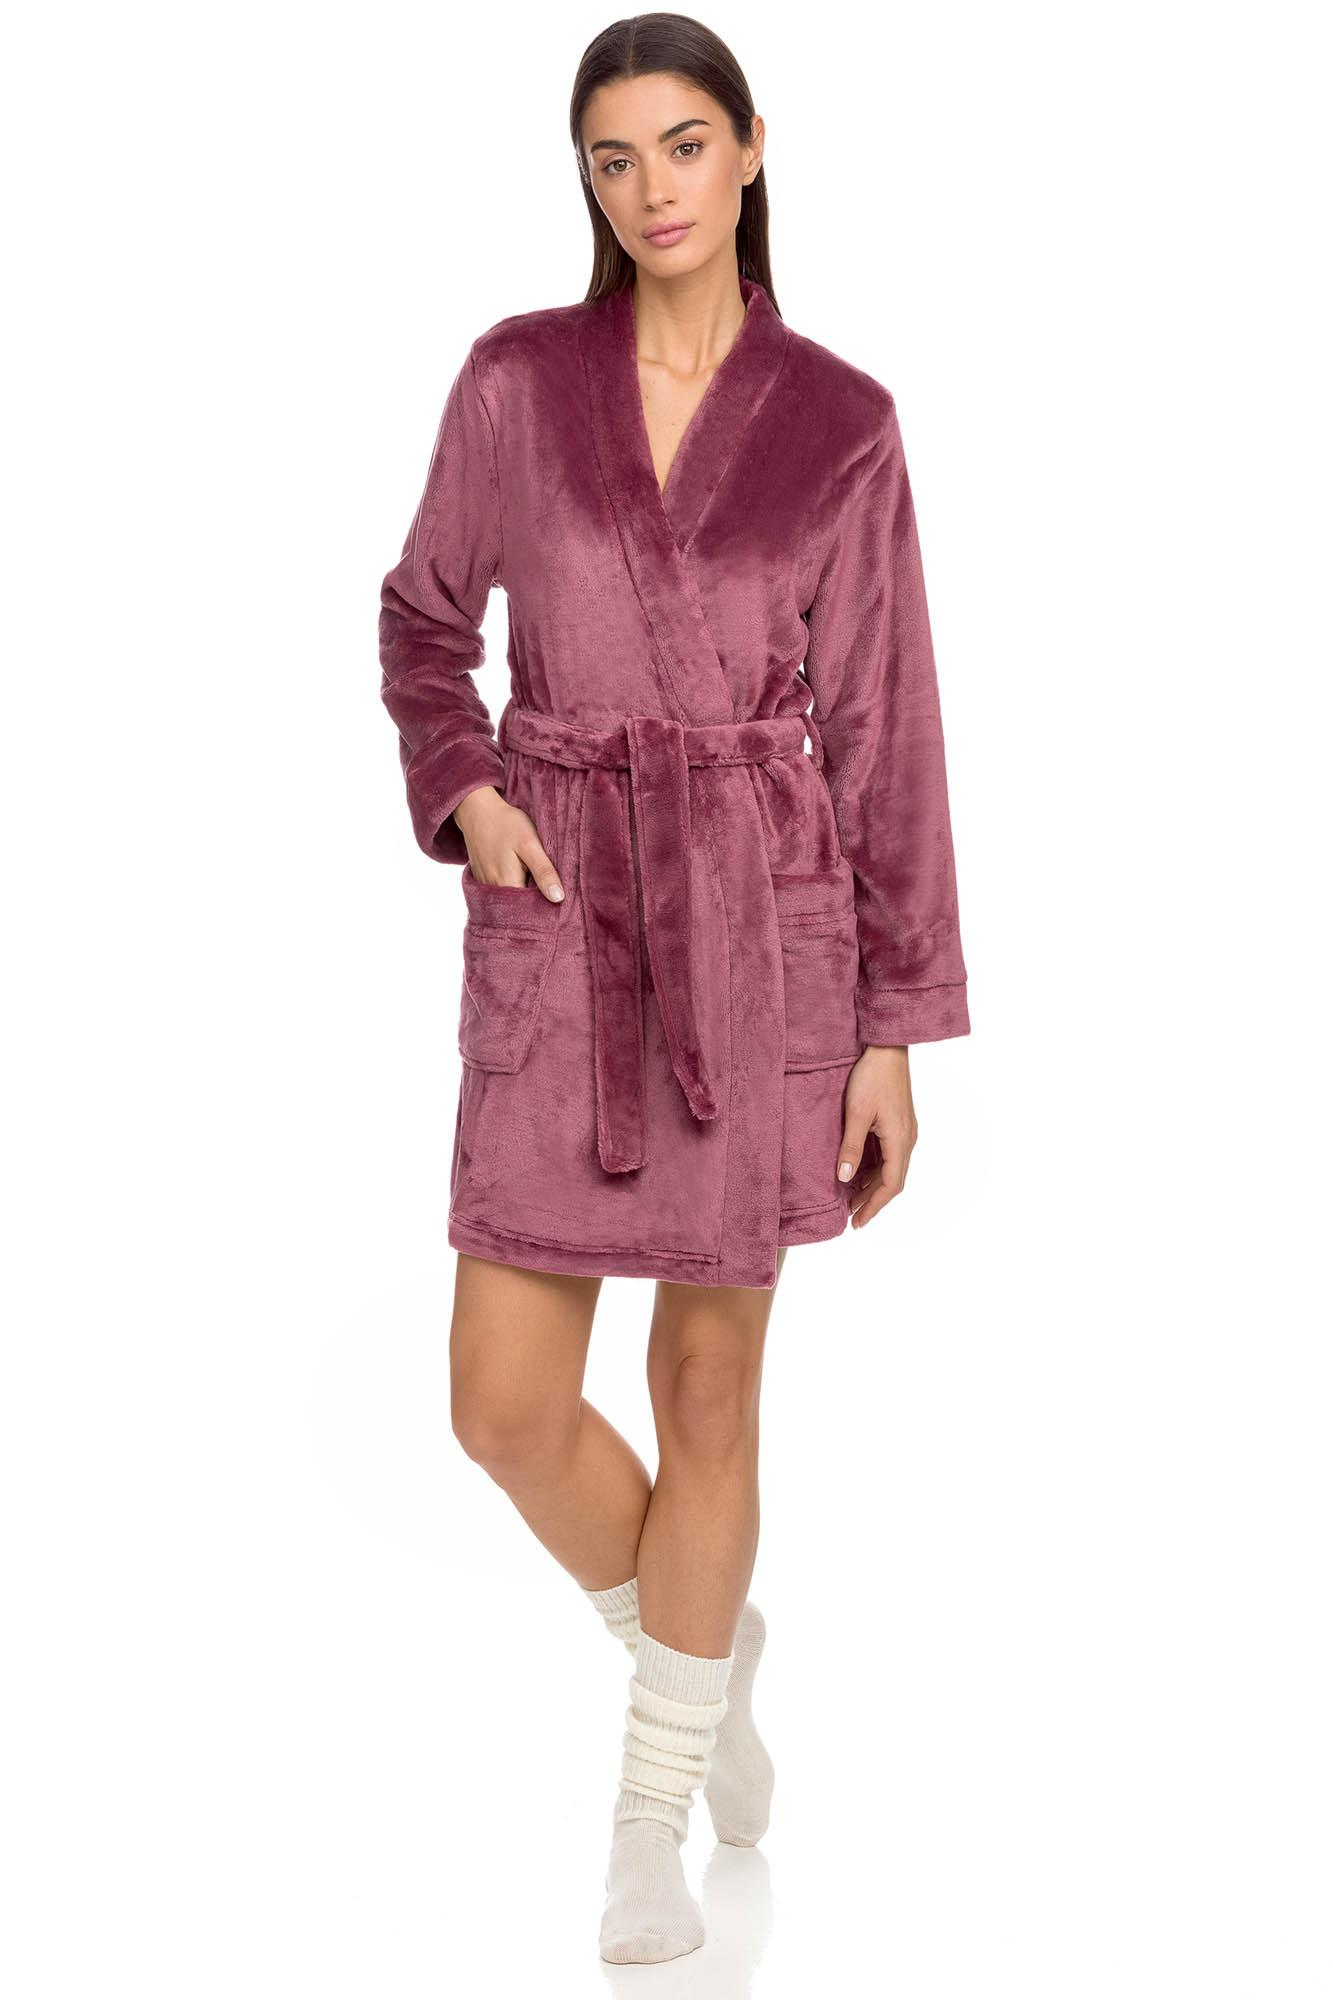 Women's Fleece Robe